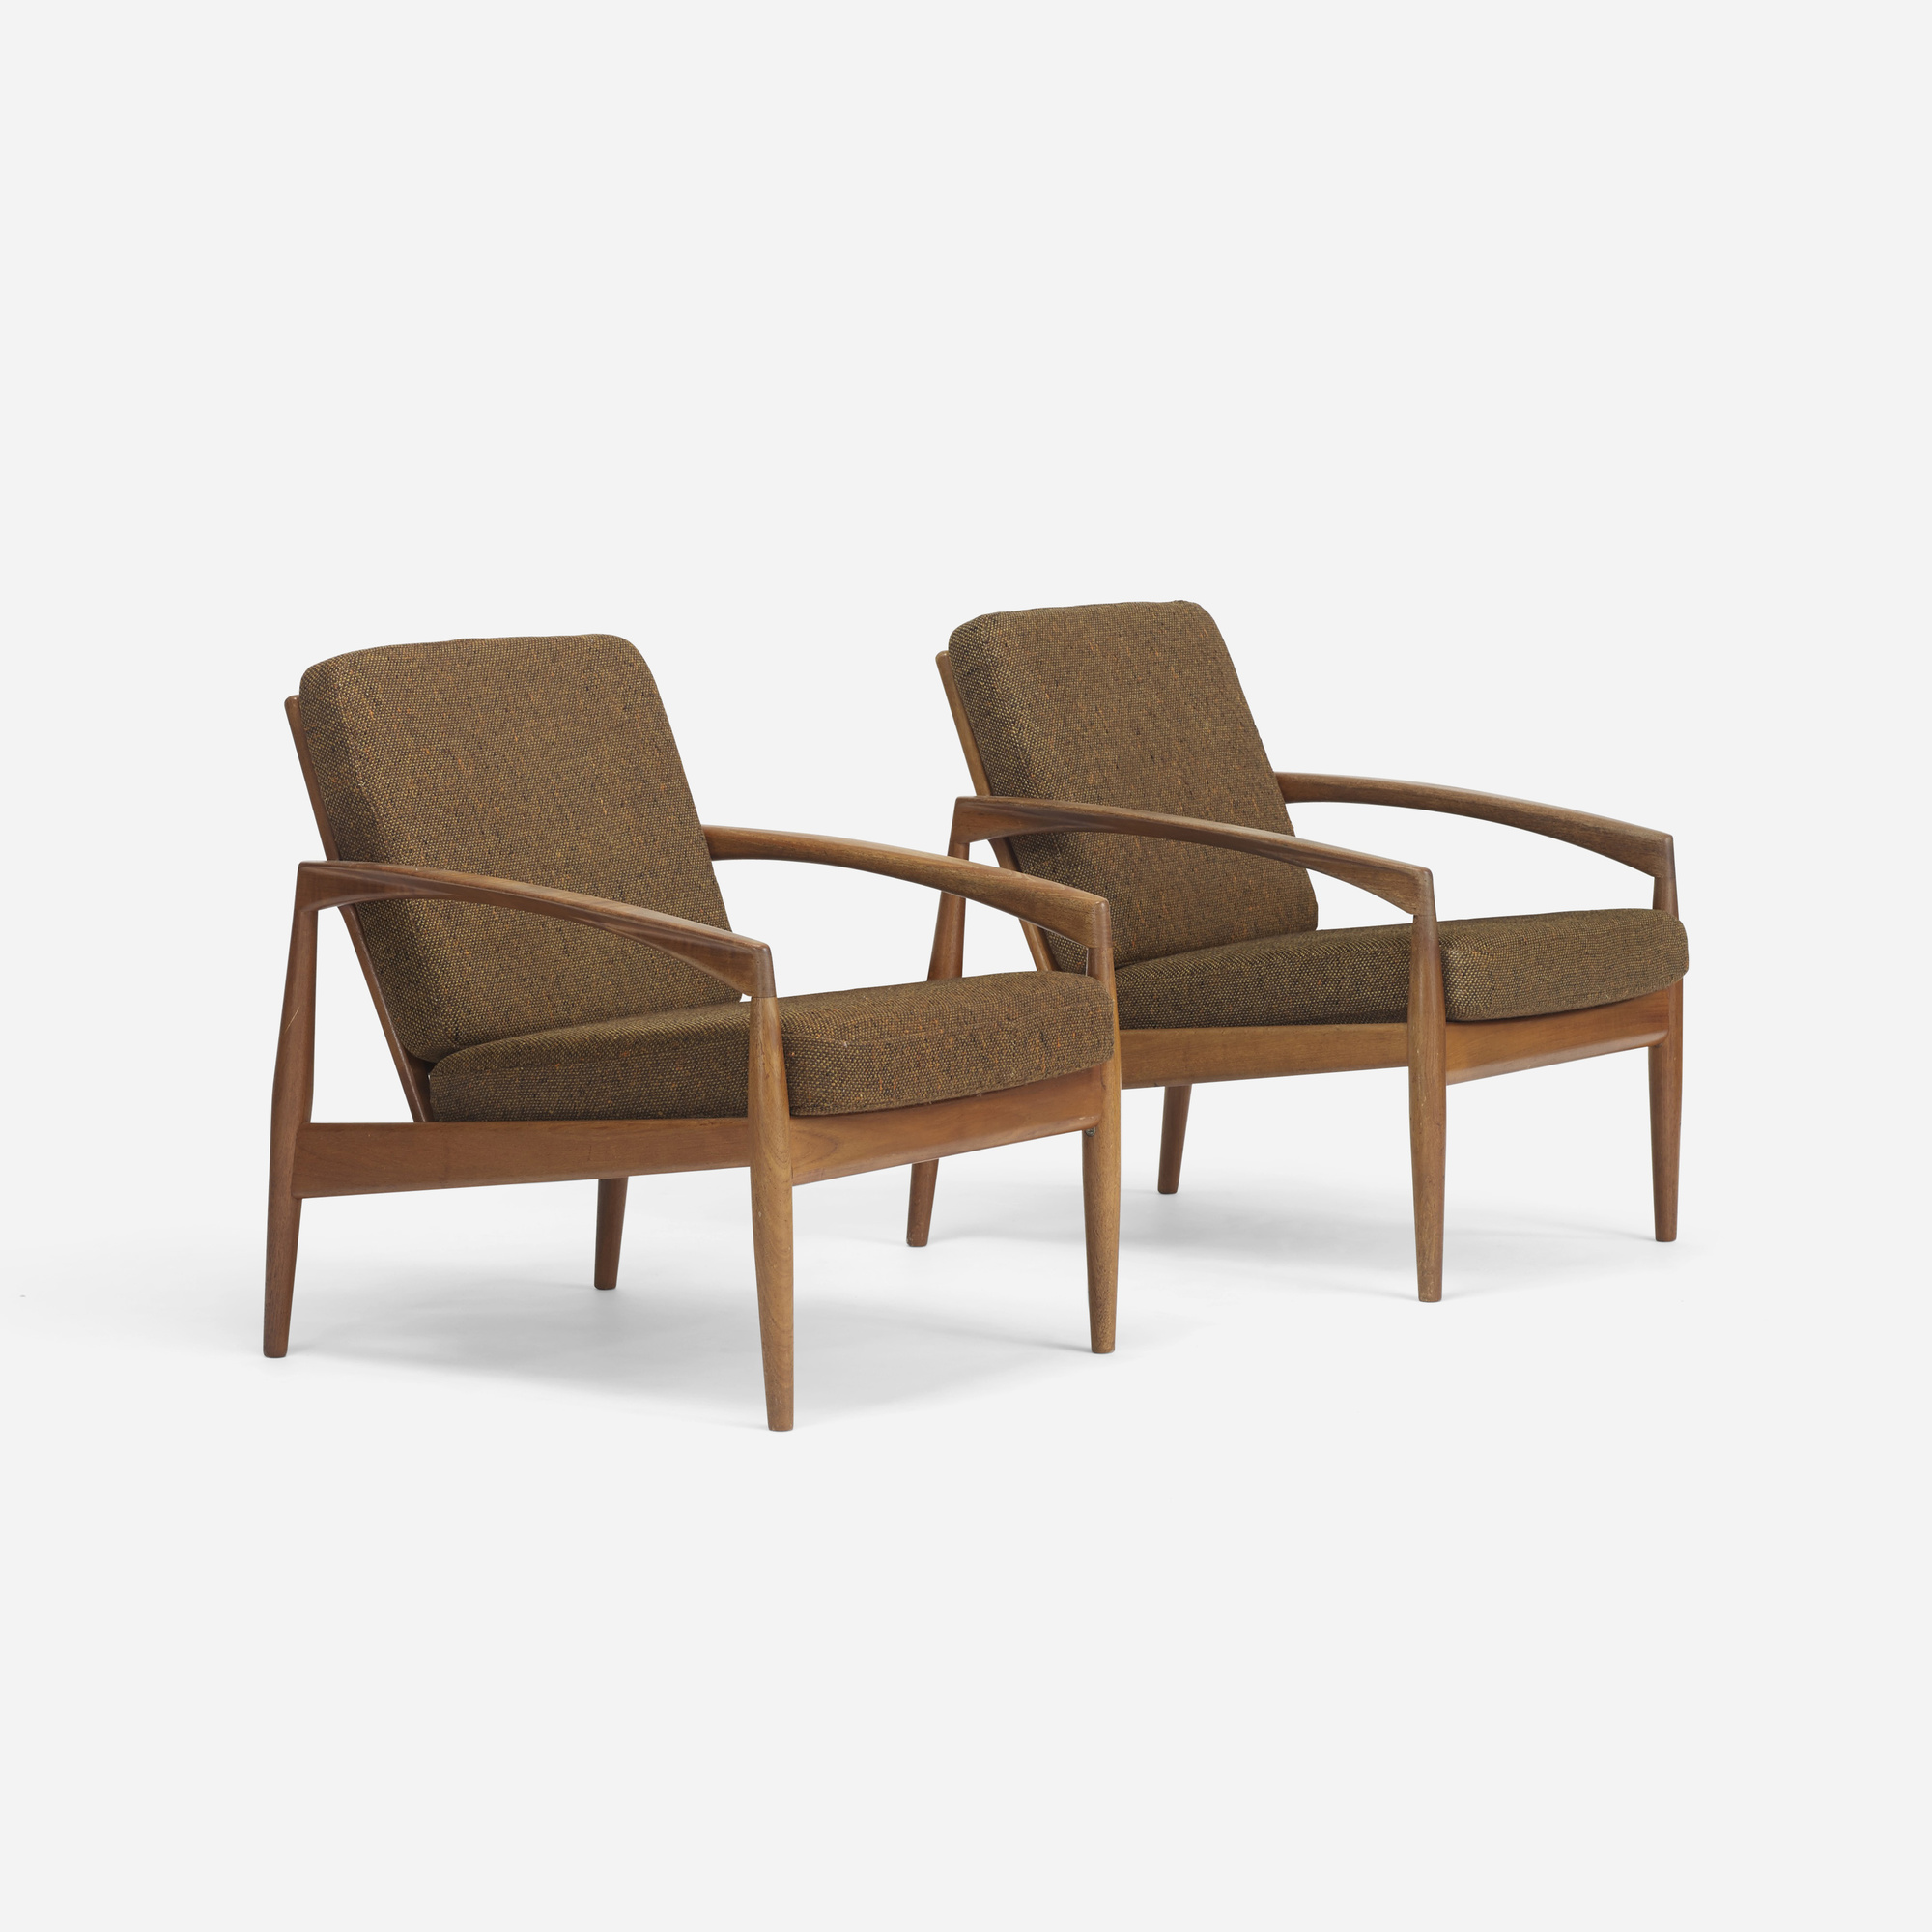 274: Kai Kristiansen / pair of lounge chairs, model 121 (1 of 4)